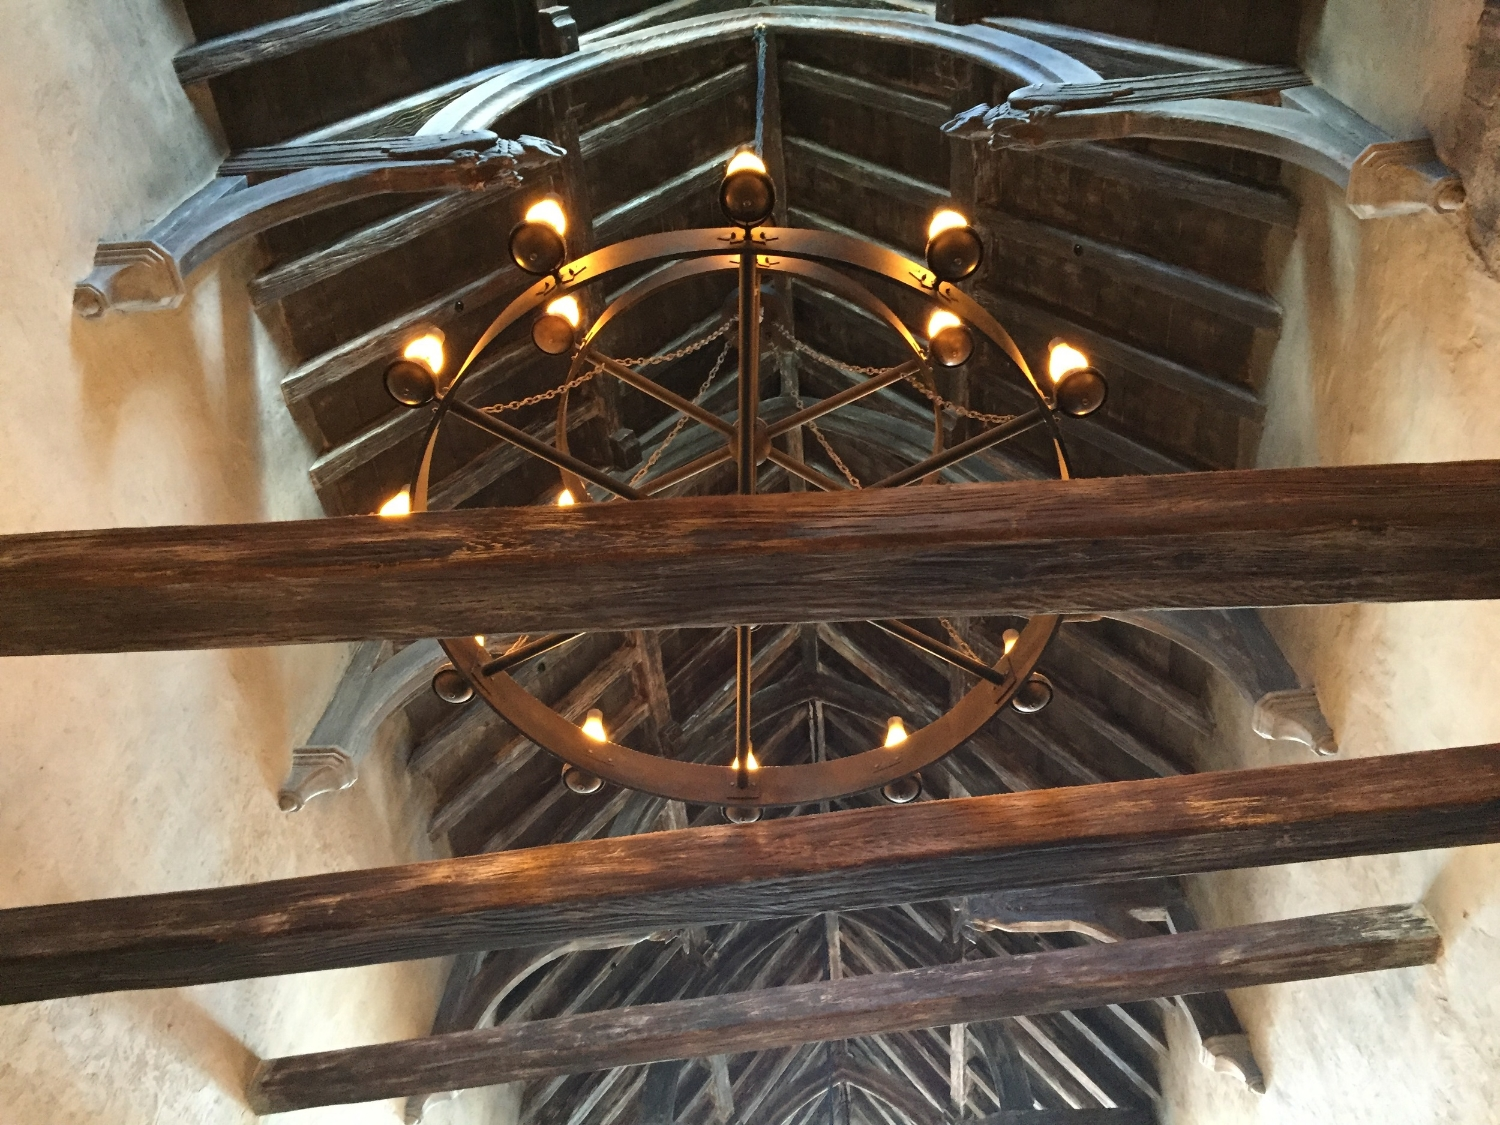 Vaulted Ceiling in the Leaky Cauldron